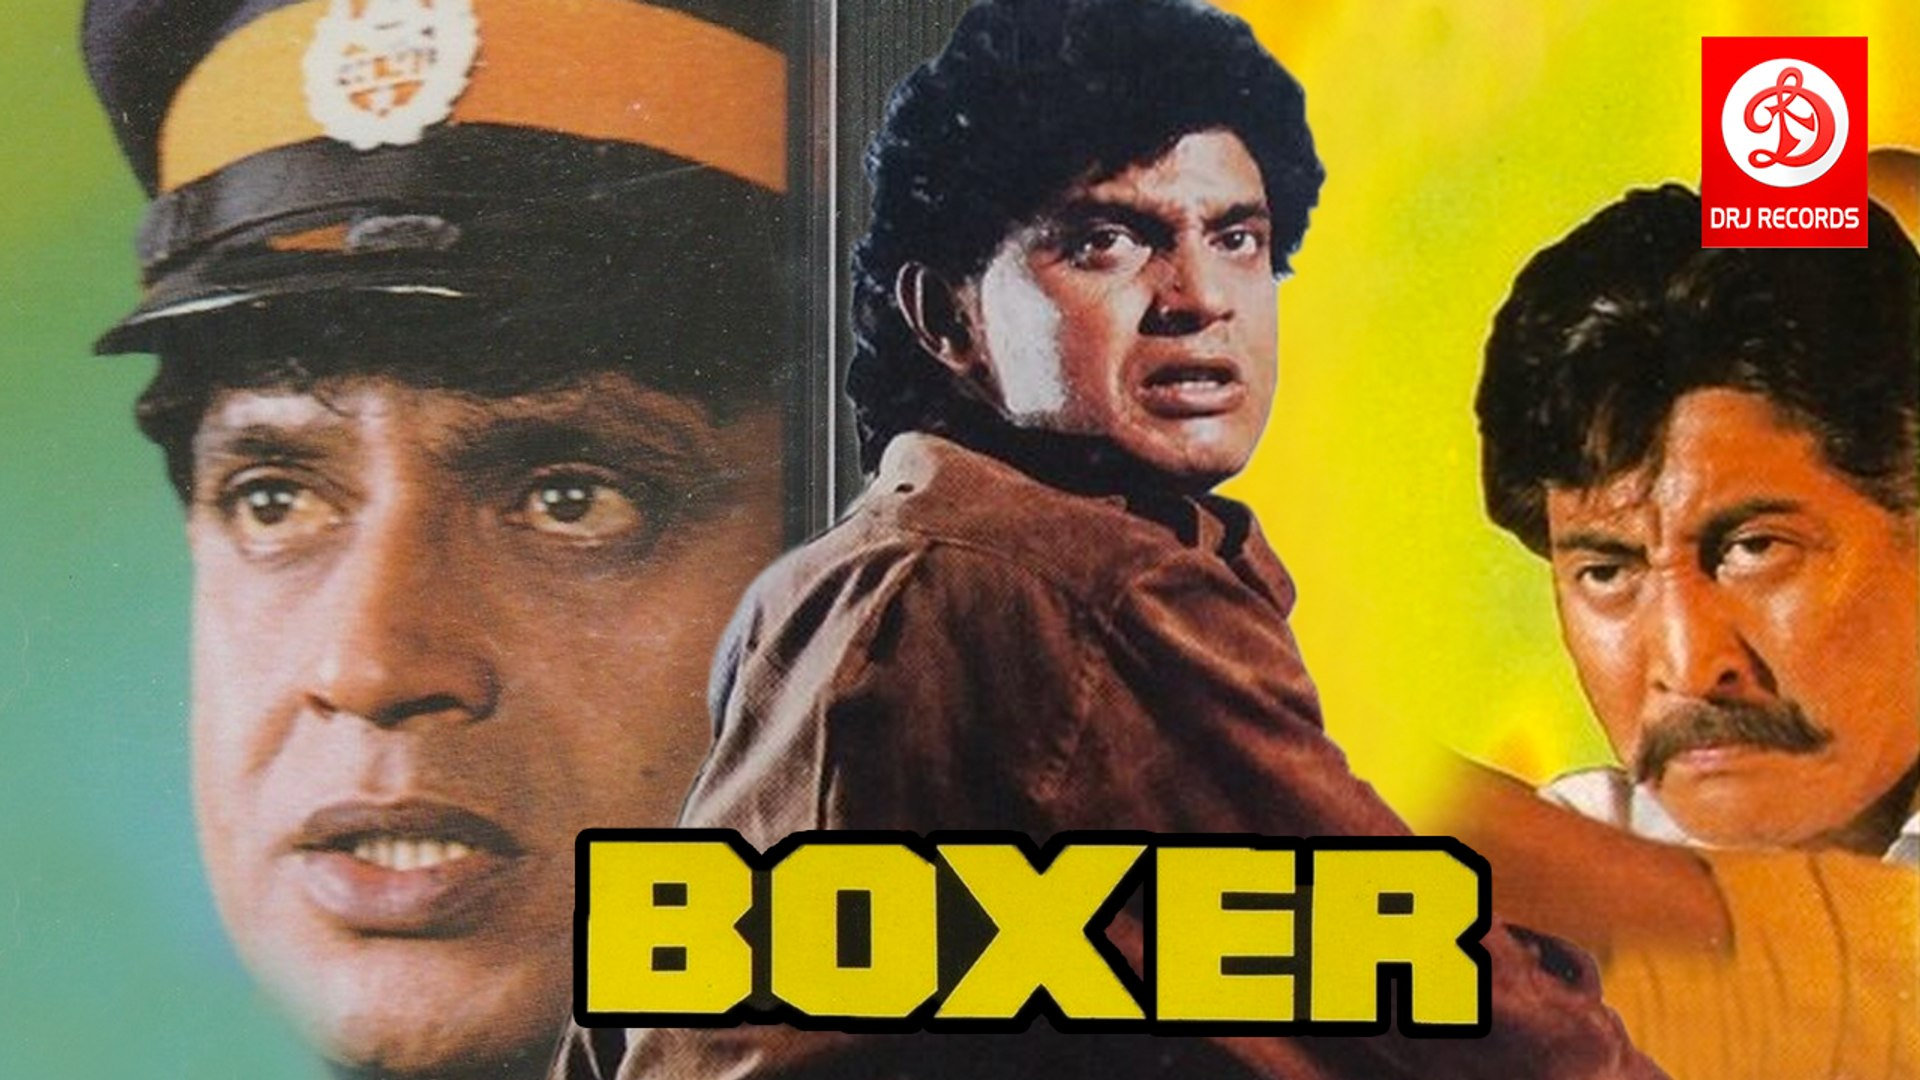 Boxer Full Hindi Movie {HD} Mithun Chakraborty, Rati Agnihot | Latest Bollywood Action Movies